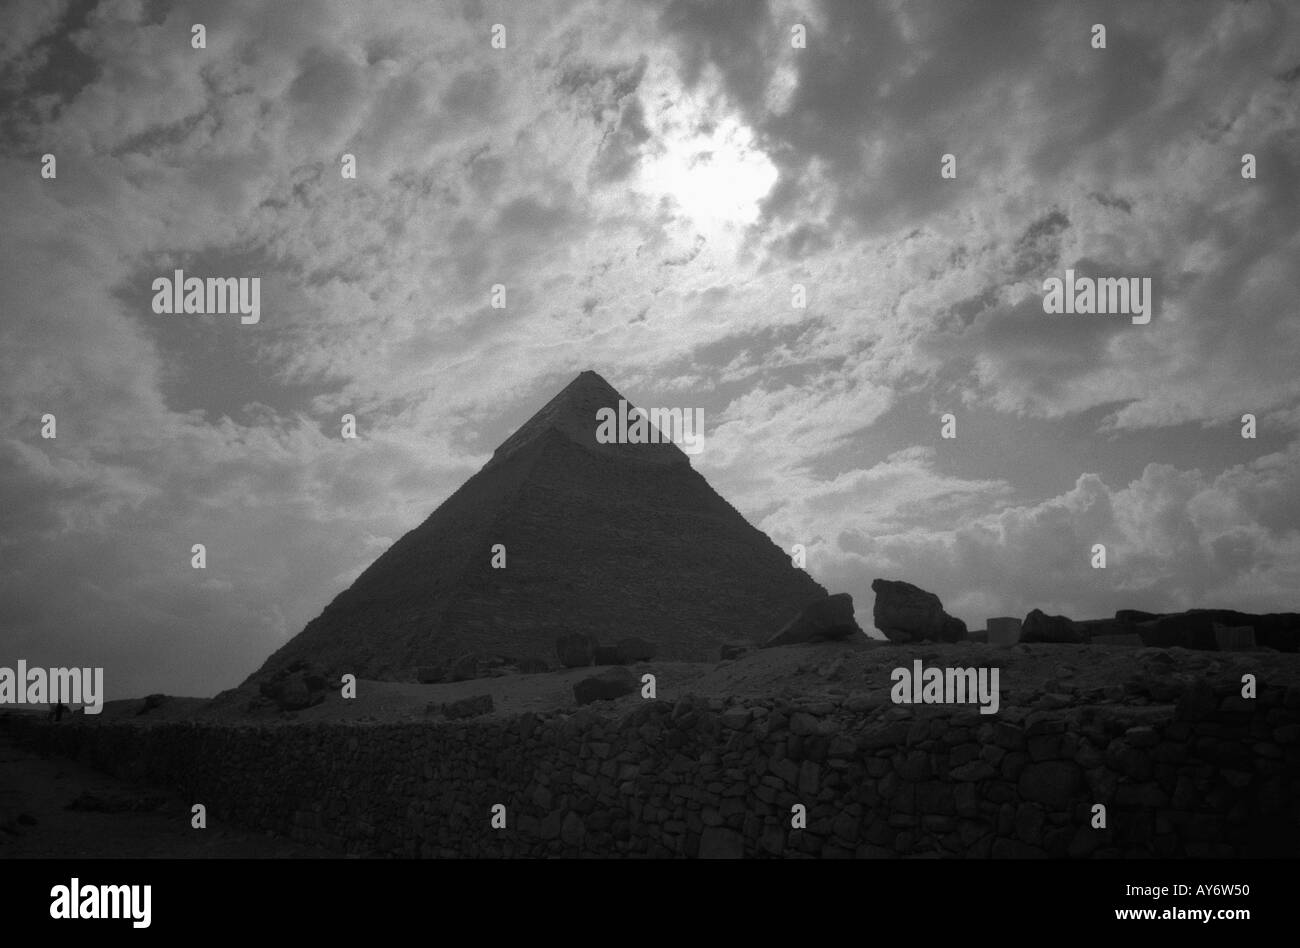 Egyptian royal mortuary & sacred structures Giza Pyramids Necropolis Cairo Arab Republic of Egypt North Africa Middle East - Stock Image